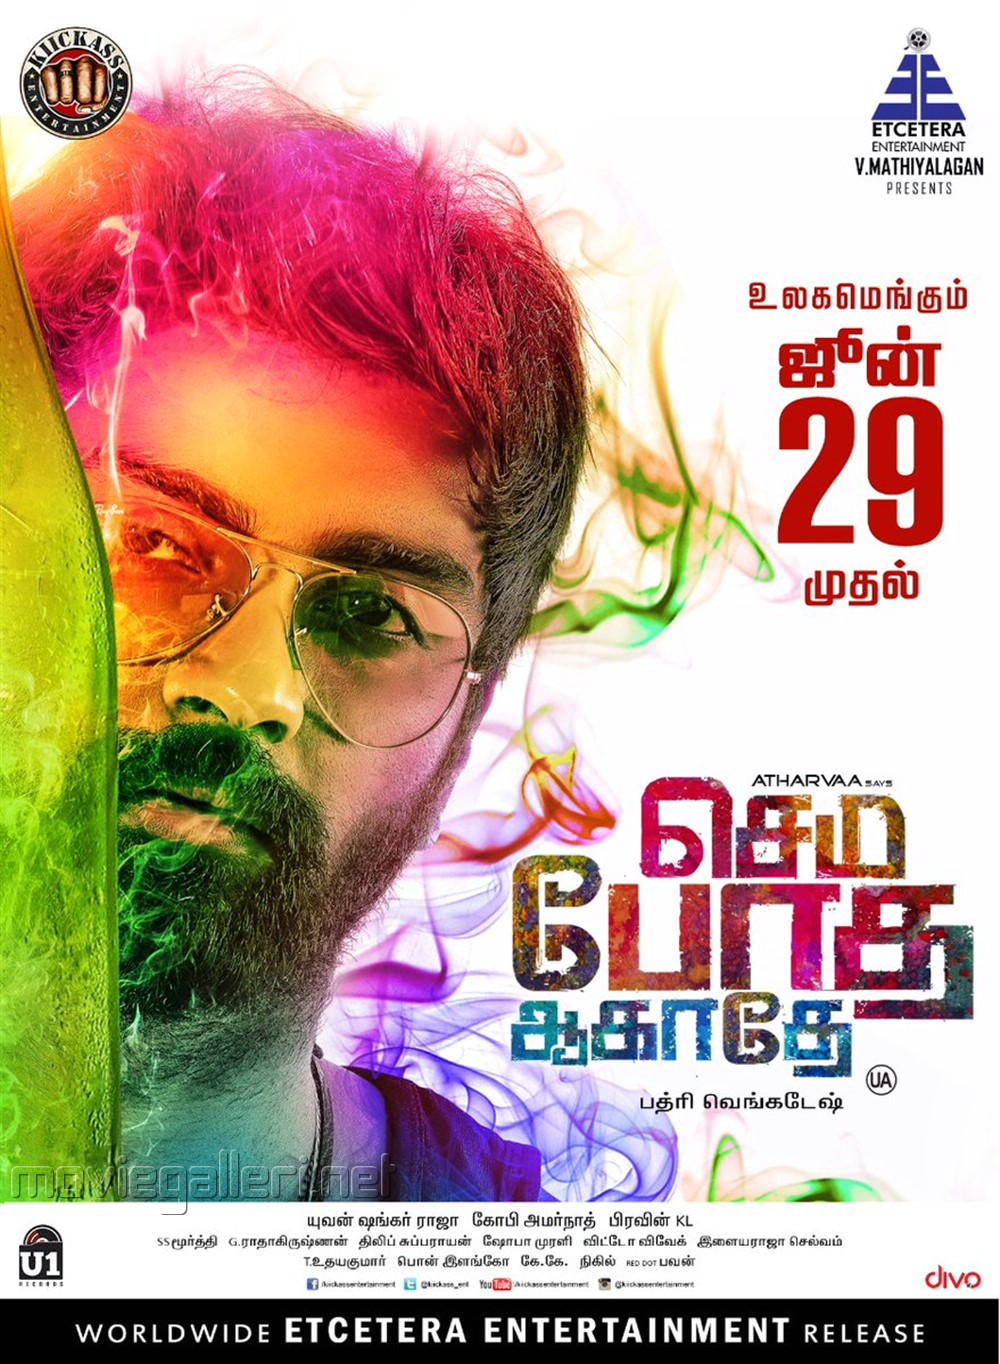 Actor Atharvaa Semma Botha Aagathey Movie Release Posters